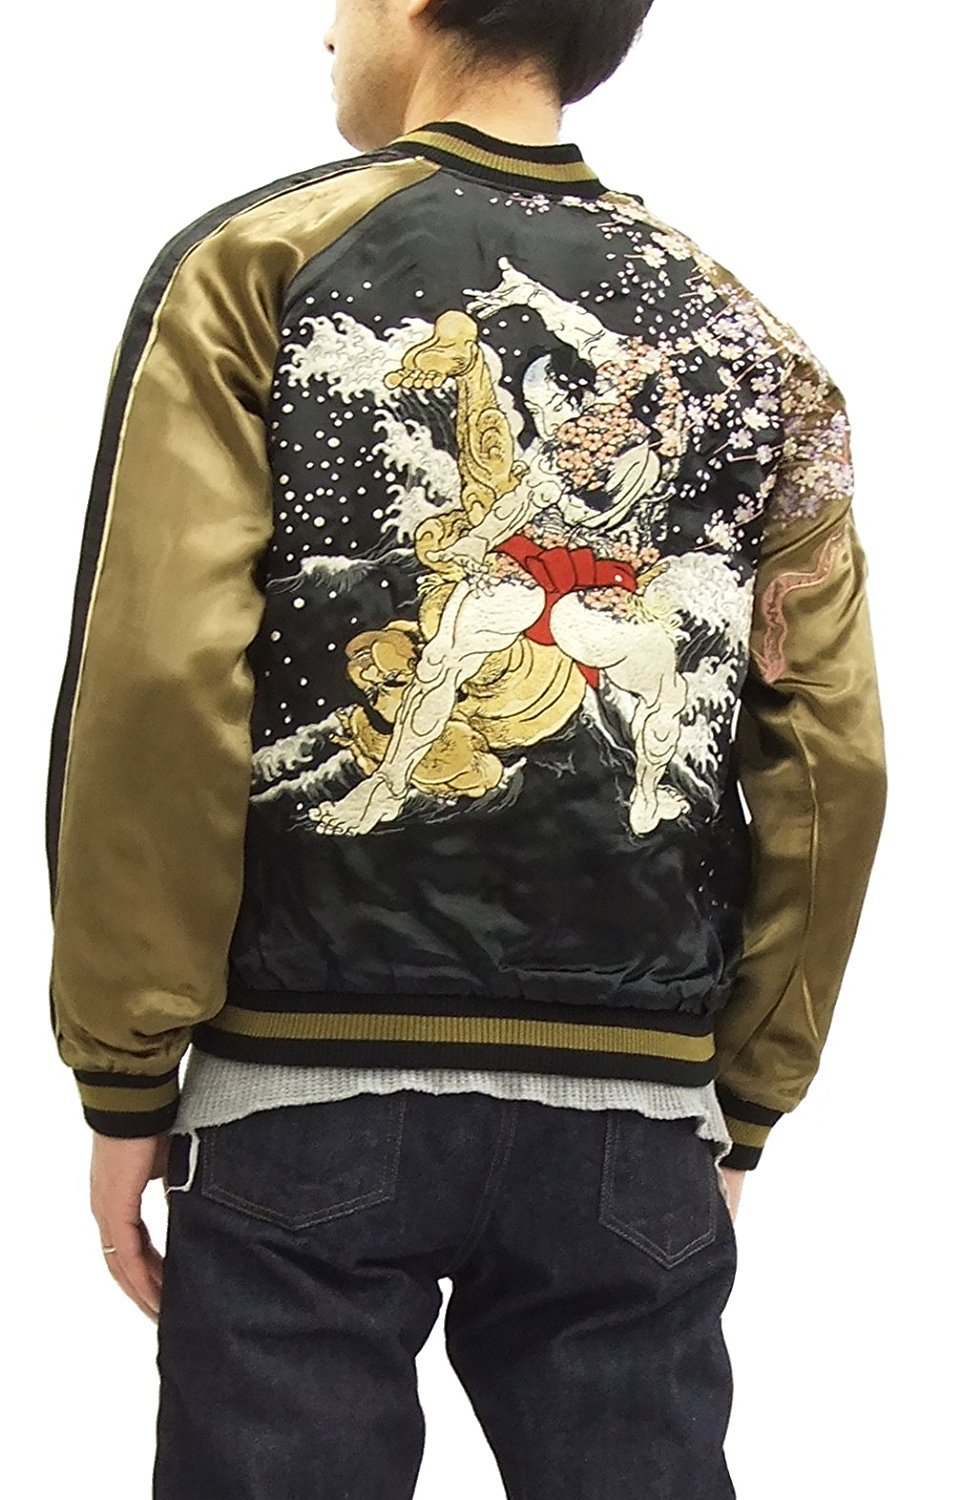 SCRIPT Japanese Souvenir Jacket Sumo Wrestling SSJ-515 Men's Sukajan (Medium) by SCRIPT